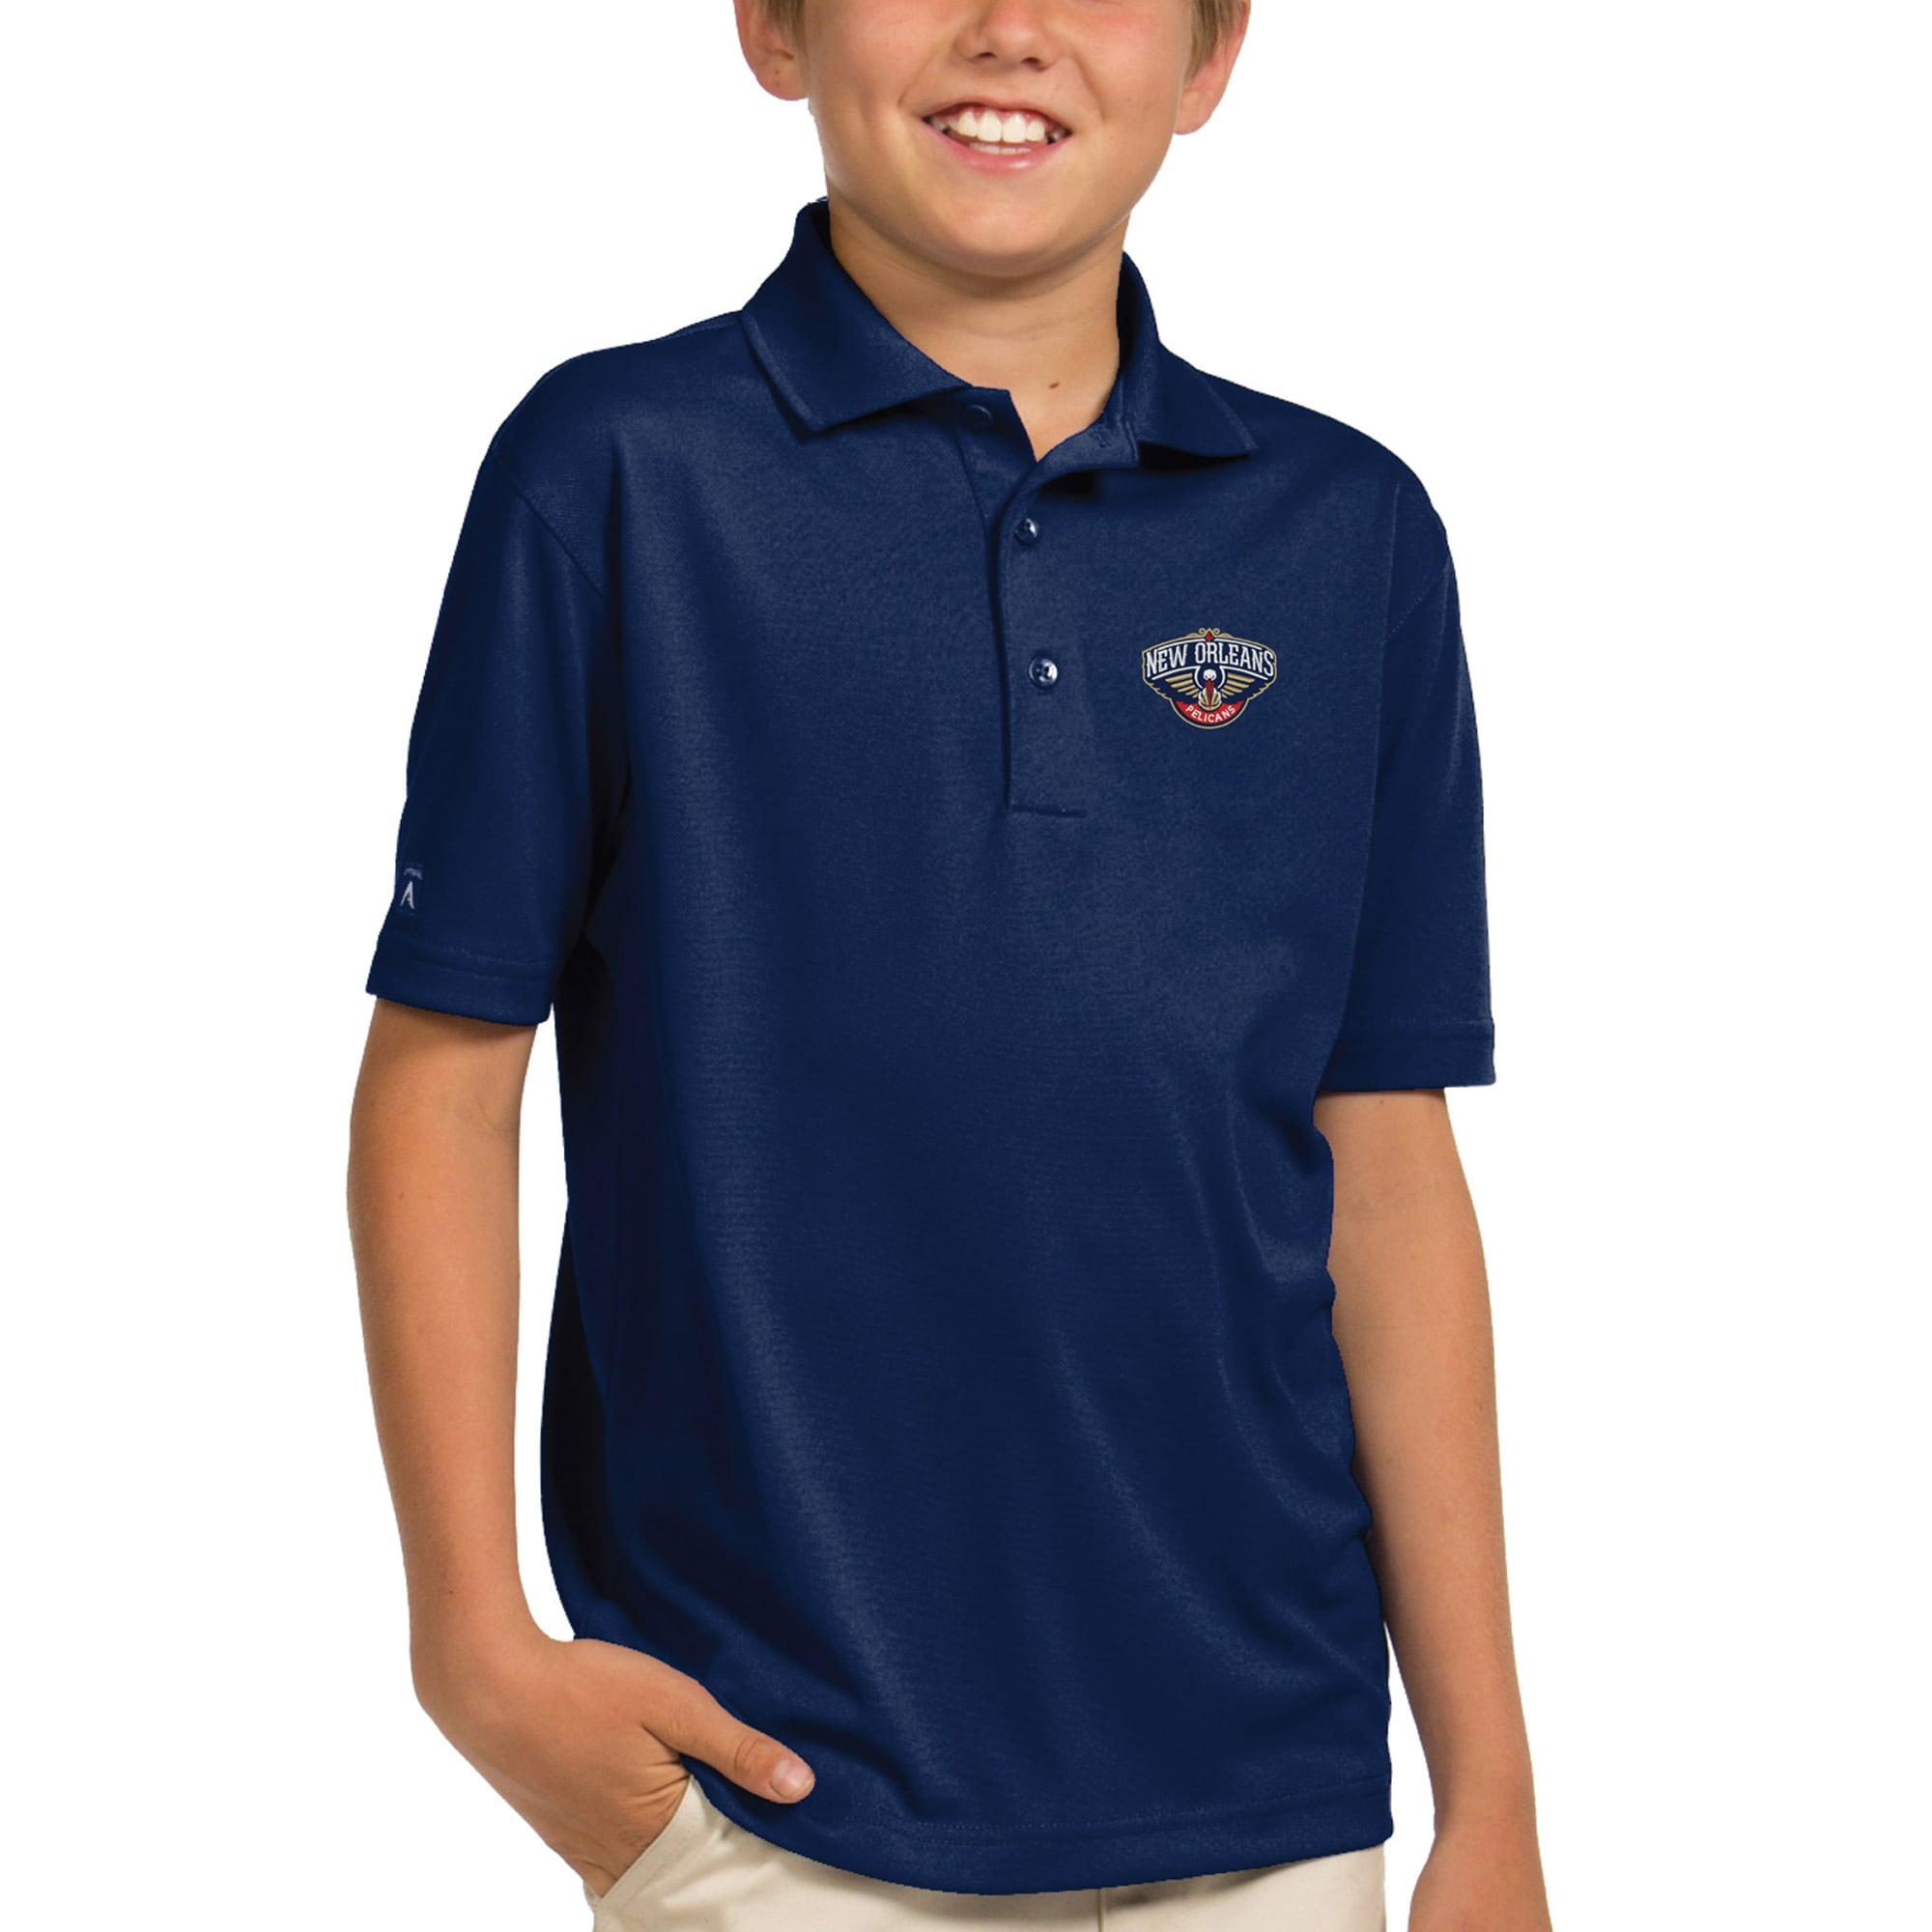 New Orleans Pelicans Antigua Youth Pique Desert Dry X-tra Lite Polo - Navy